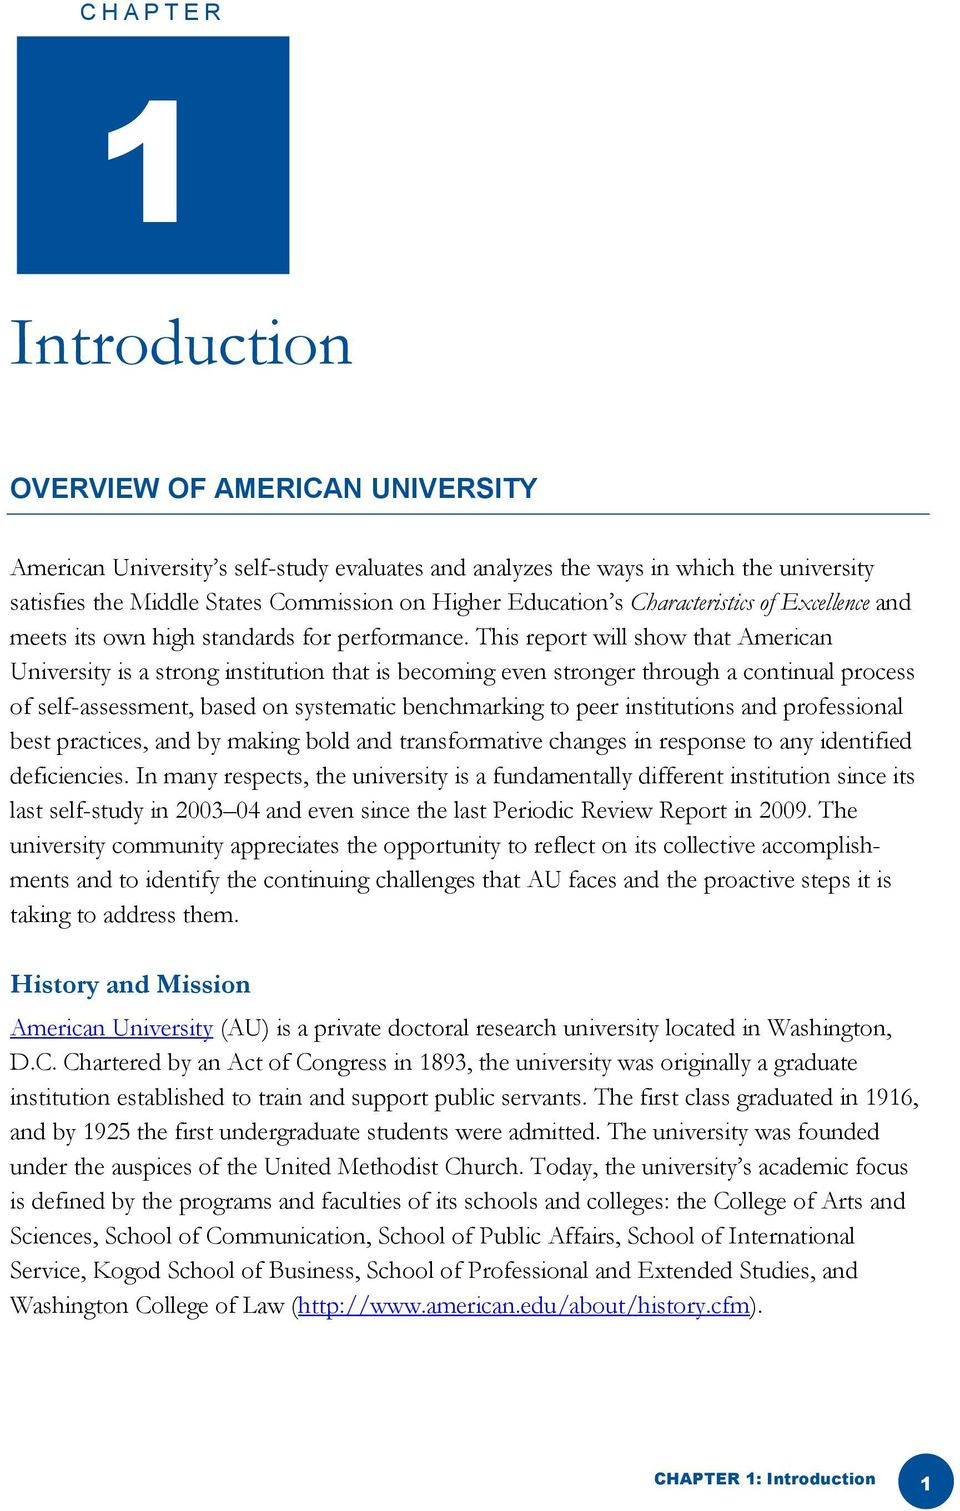 This report will show that American University is a strong institution that is becoming even stronger through a continual process of self-assessment, based on systematic benchmarking to peer